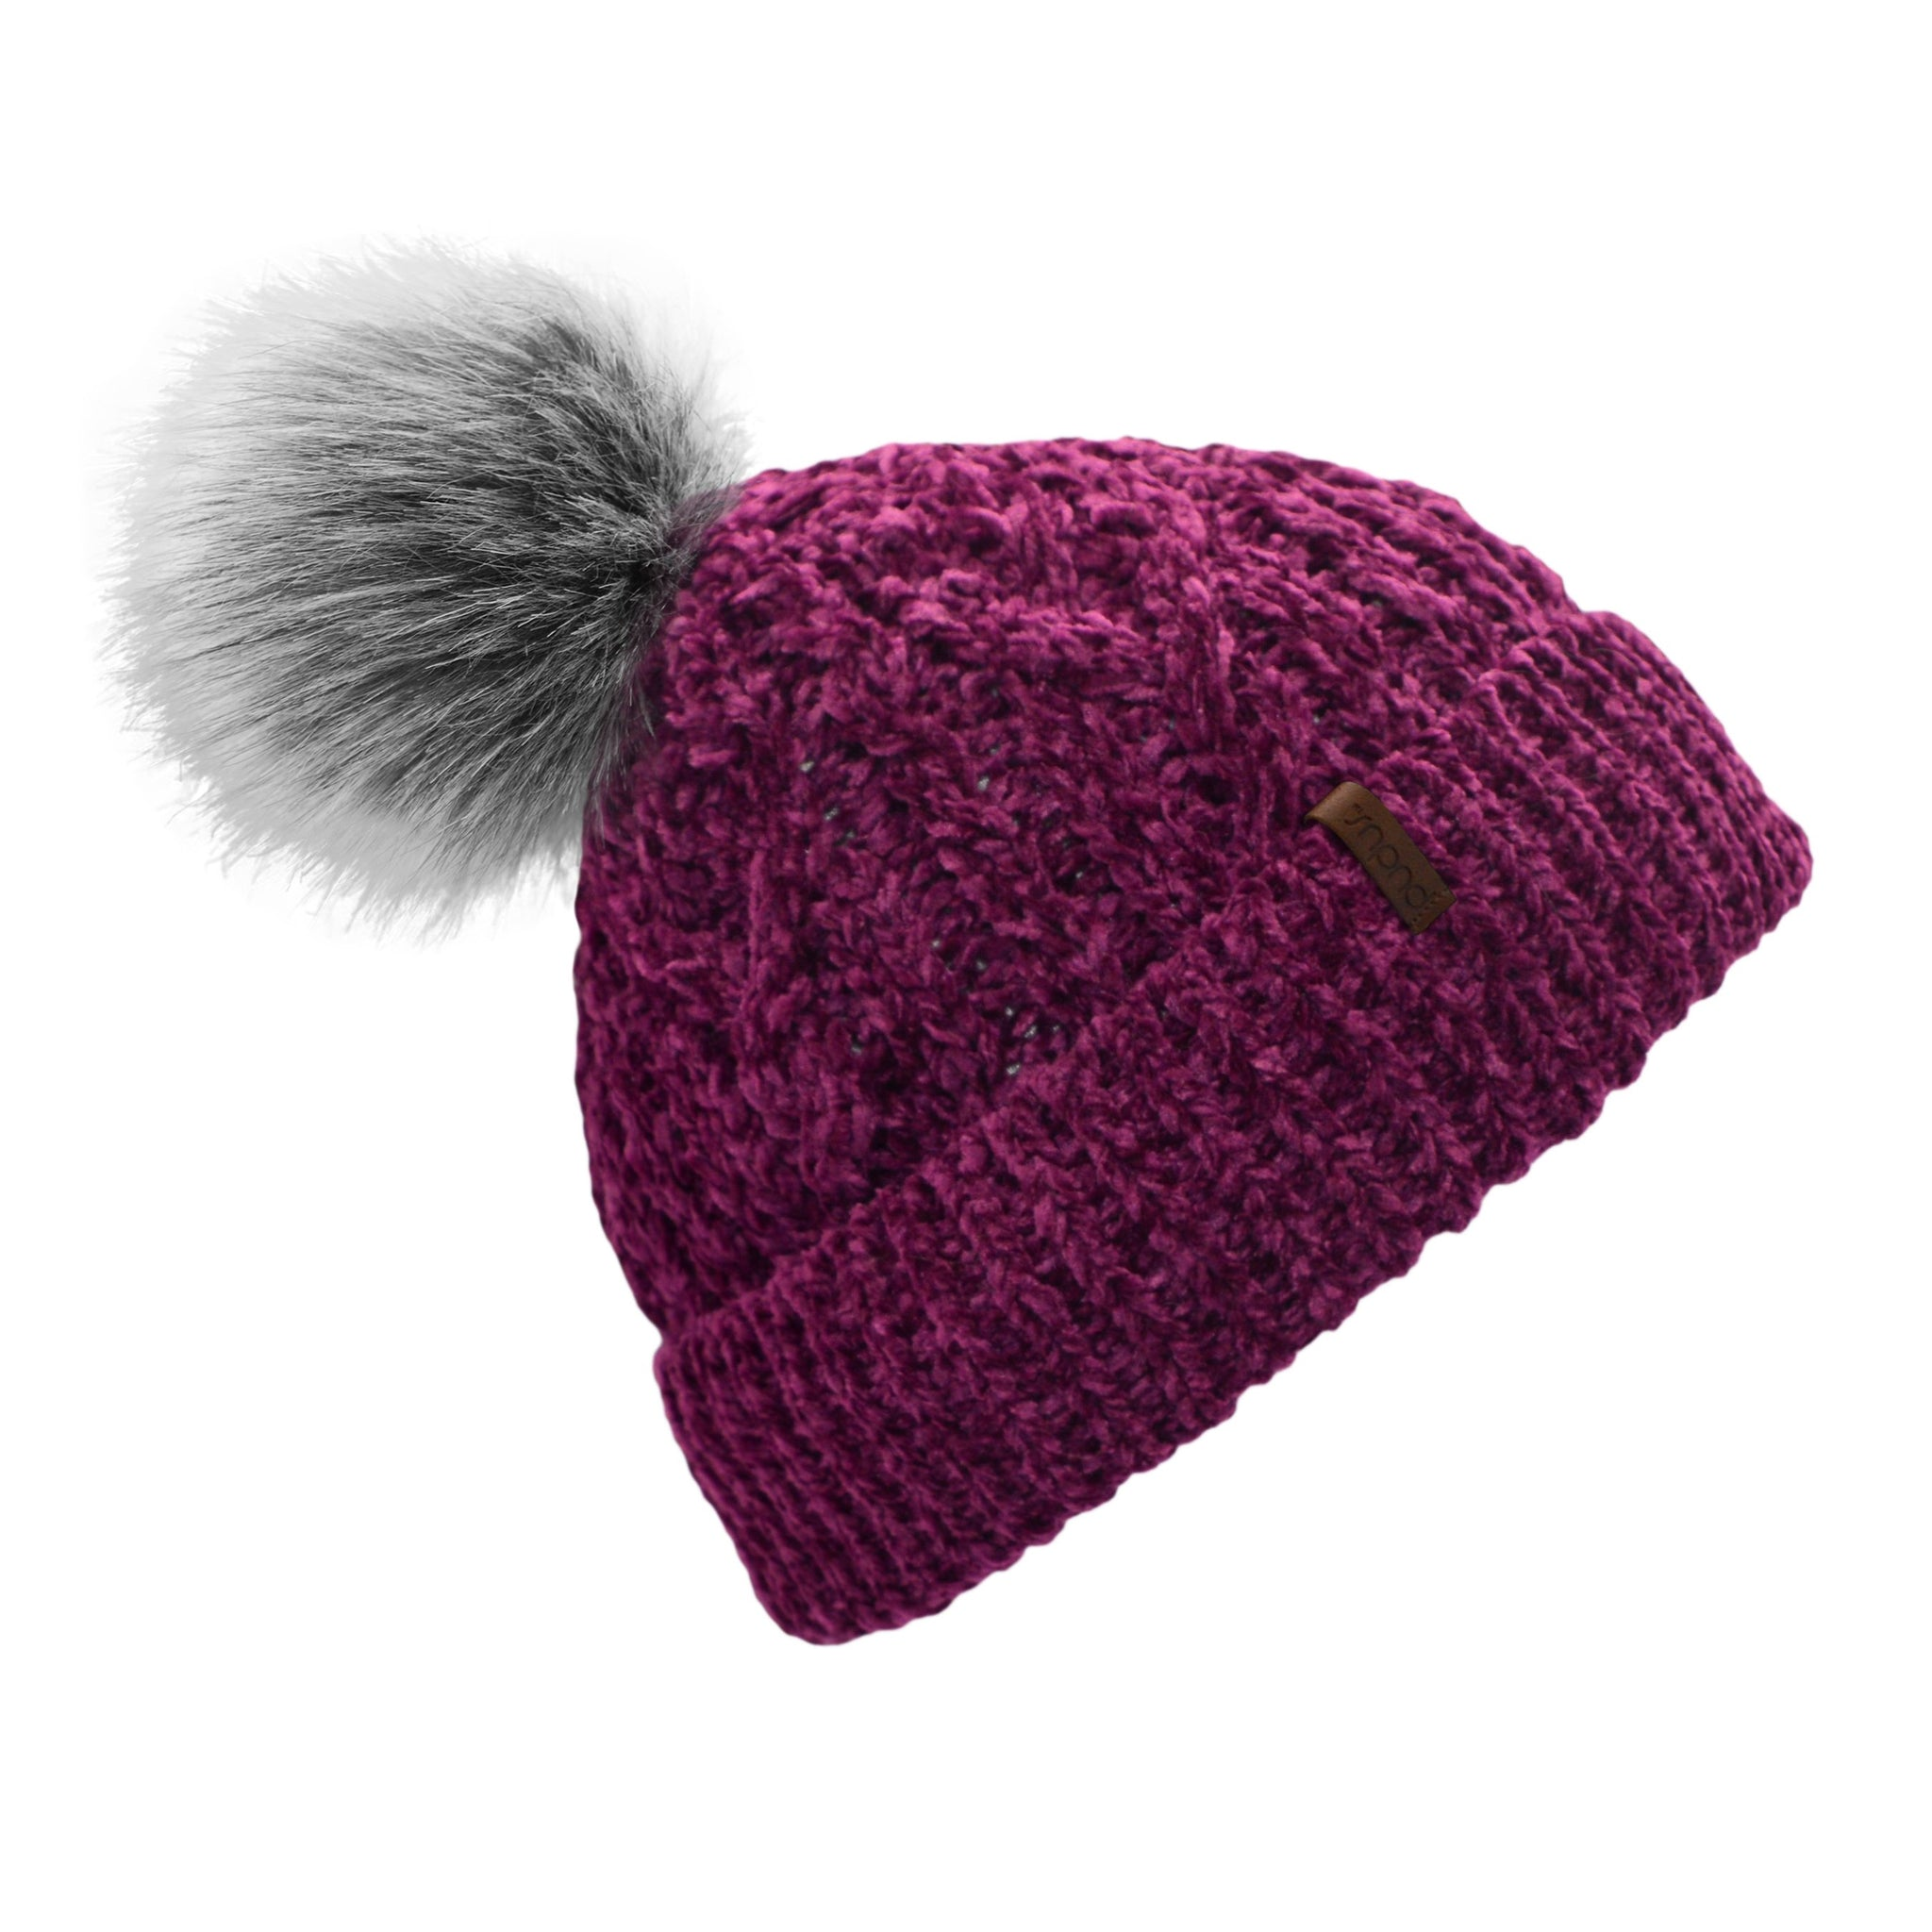 Pudus Winter Cable Knit Chenille Toque in Dark Purple with Fuzzy Pom Pom and Faux Fur Sherpa Fleece Lining